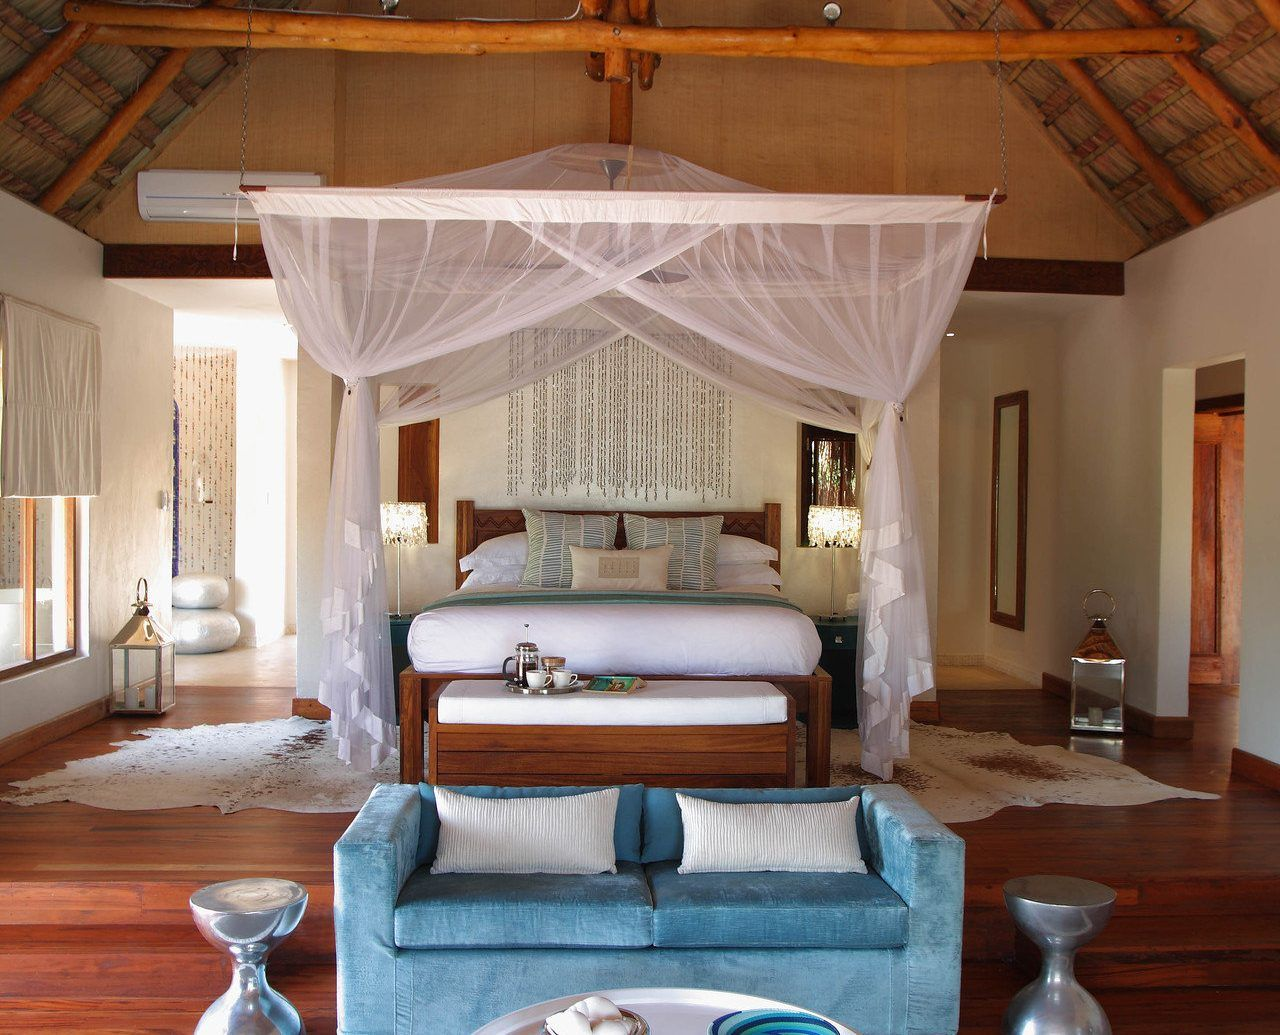 Bed Bedroom Canopy Canopy Bed Charming Cozy Homey Hotels Hut Luxury Rustic Indoor Luxury Living Room Blue Curtains Living Room Living Room Interior Design Cozy